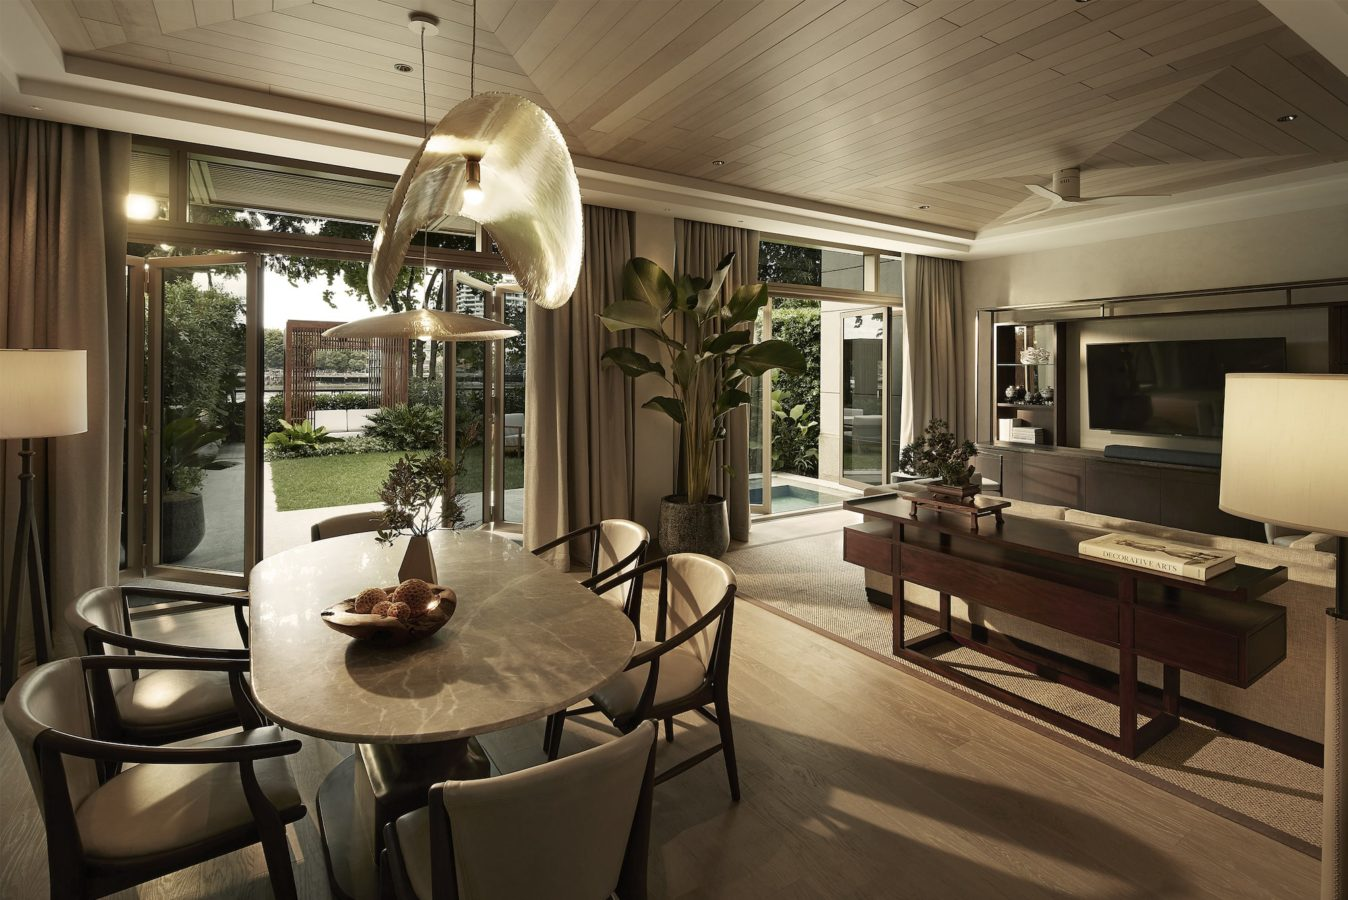 Capella Bangkok, the luxury hotel group's first property in Thailand, opens on the famed Chao Phraya River